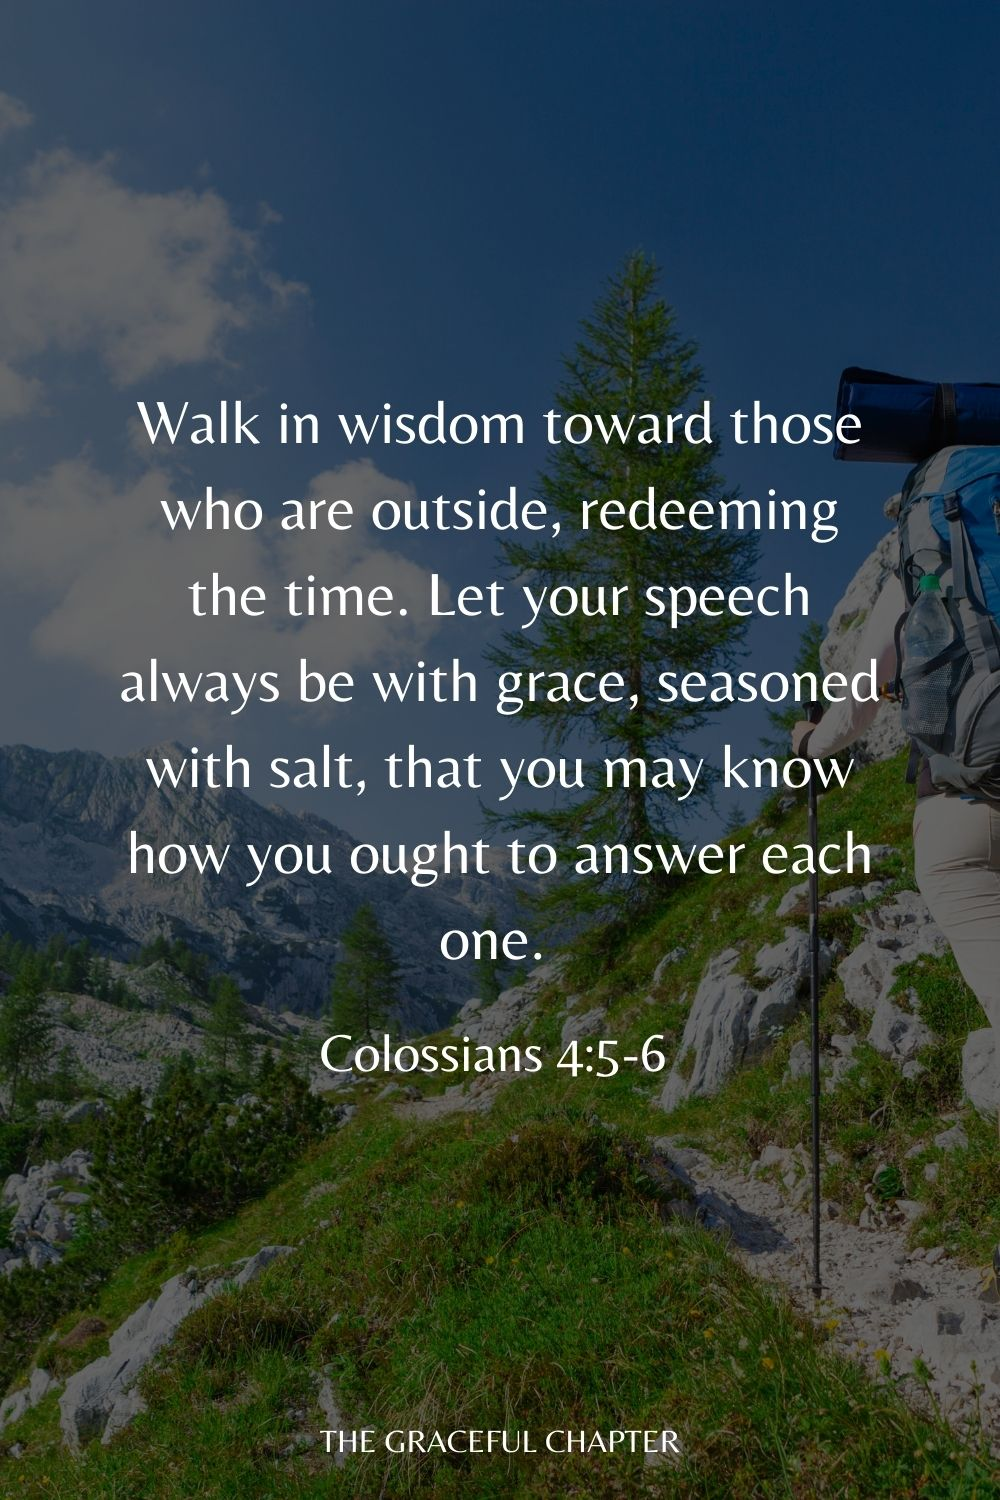 Walk in wisdom toward those who are outside, redeeming the time. Let your speech always be with grace, seasoned with salt, that you may know how you ought to answer each one. Colossians 4:5-6